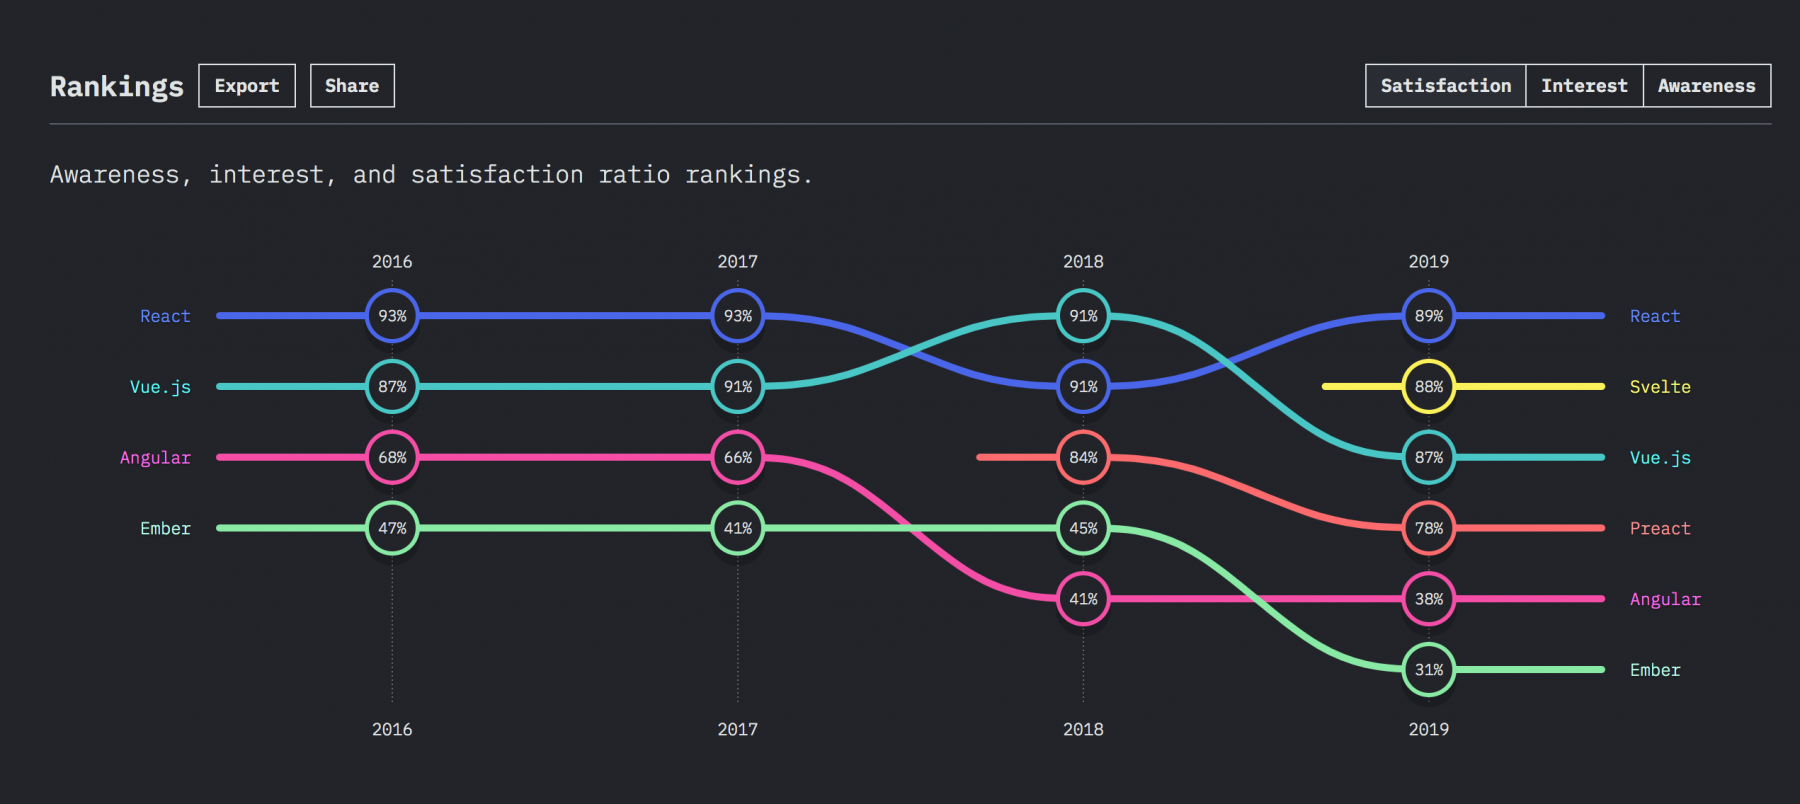 Front-end frameworks and libraries - satisfaction ratio ranking.